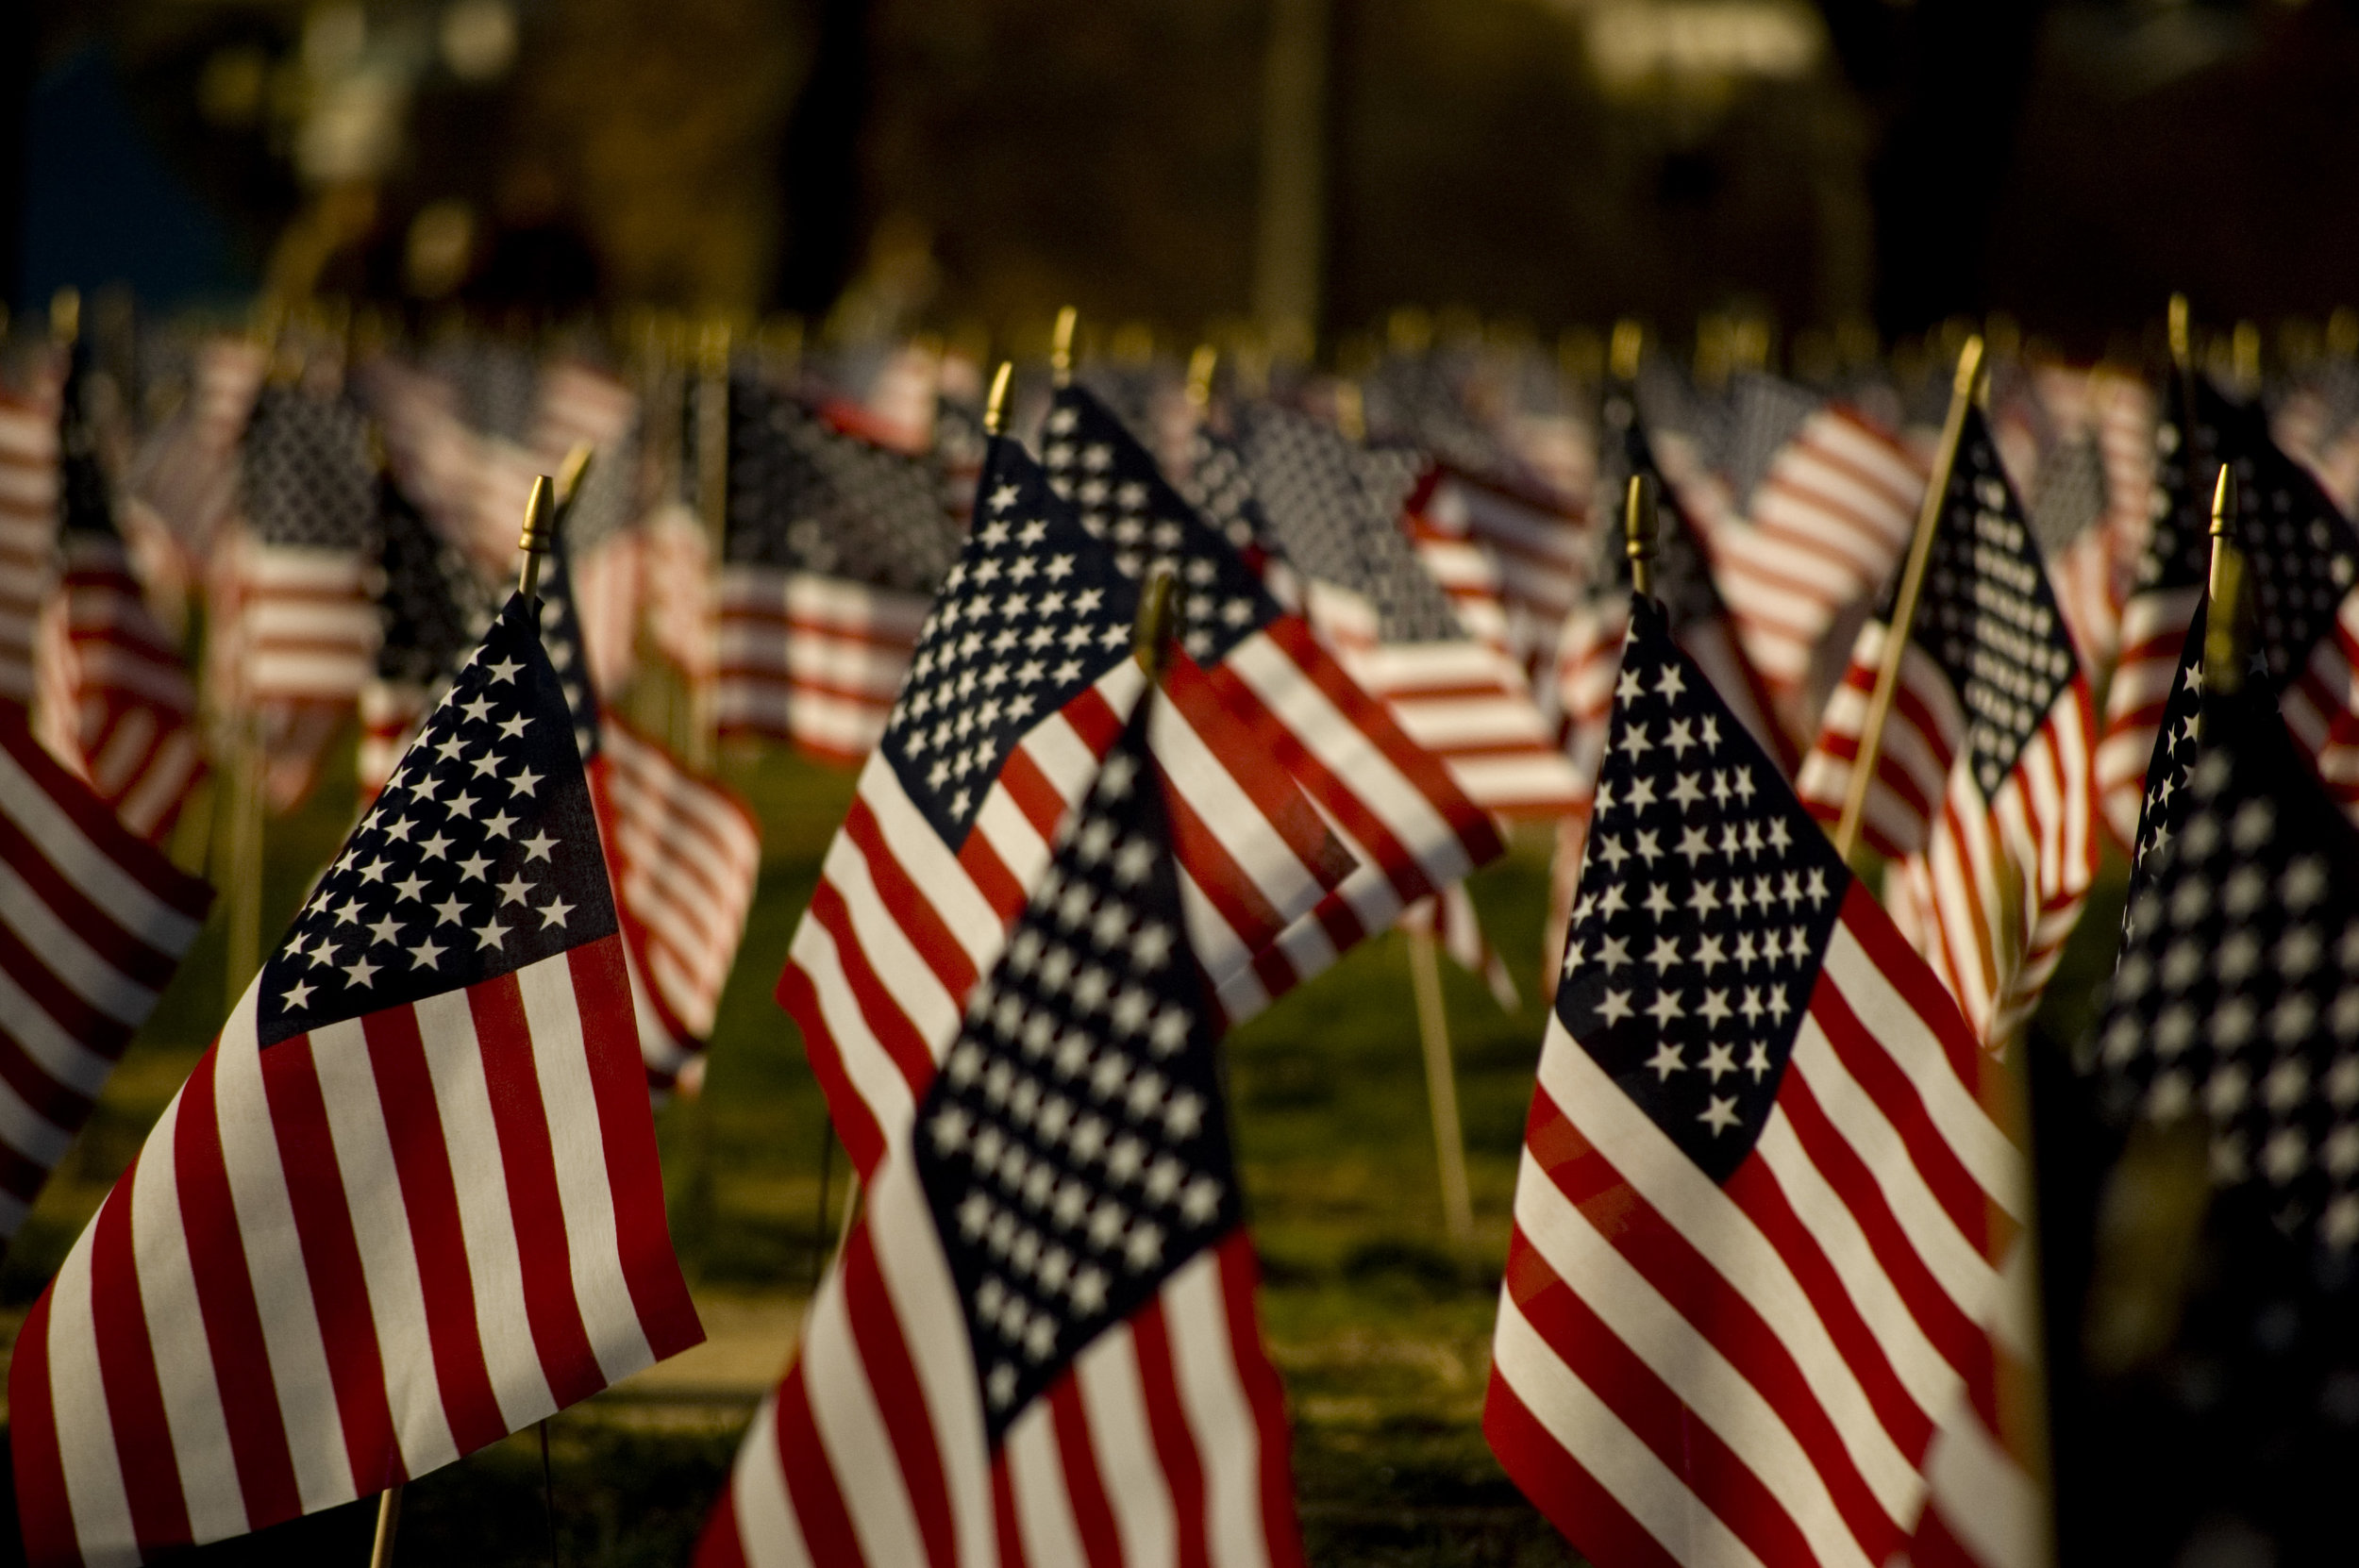 U.S._flags_on_the_National_Mall,_2007.jpg